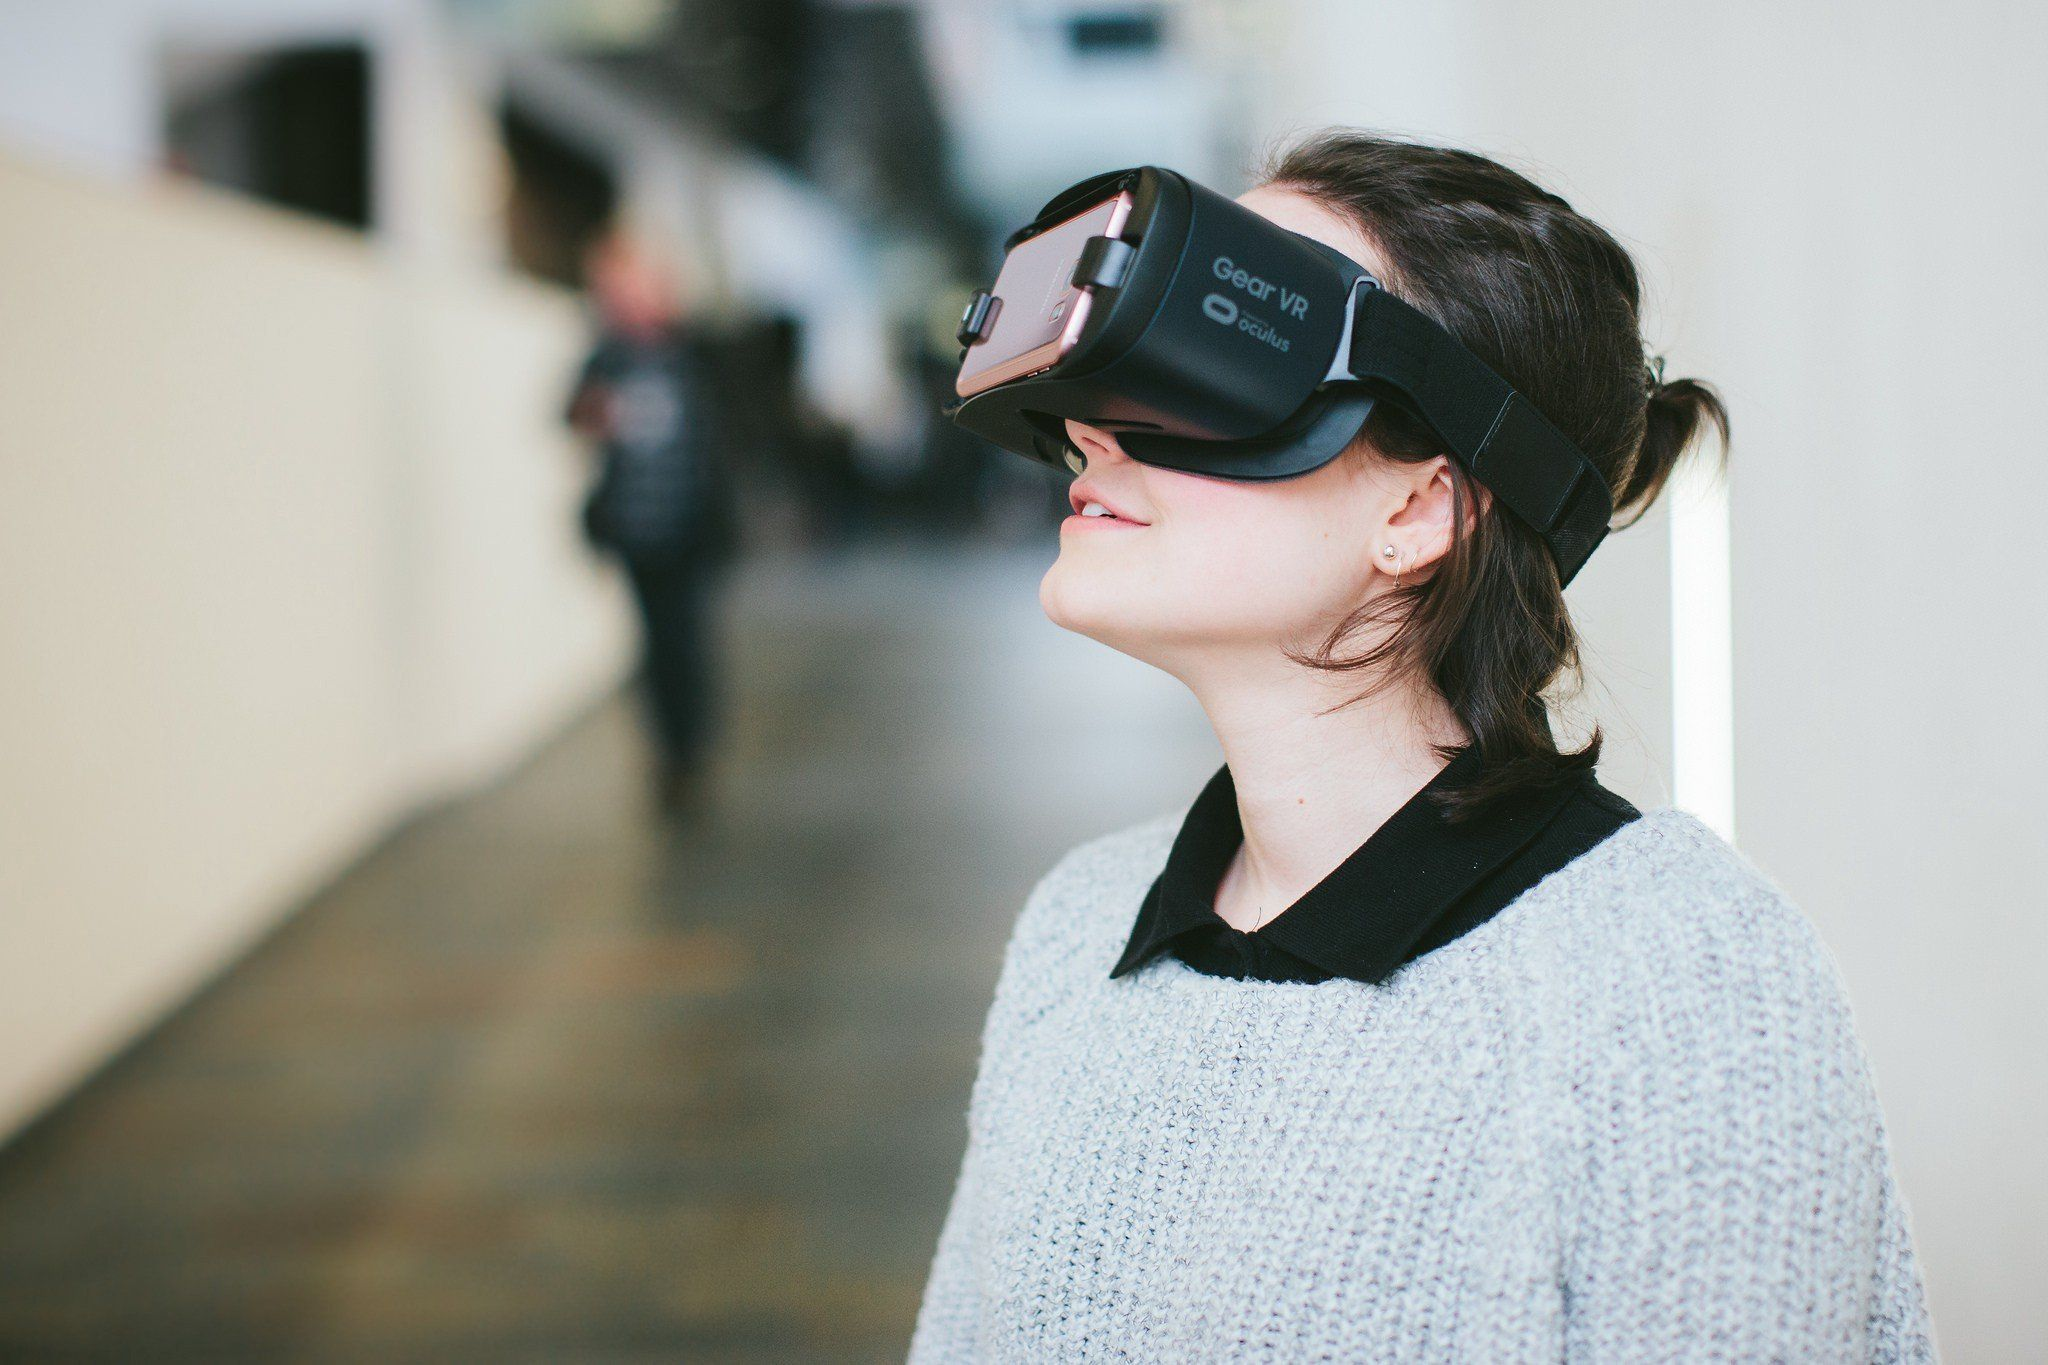 /how-learning-from-the-physical-world-can-help-us-design-virtual-reality-experiences-eq7l31bi feature image